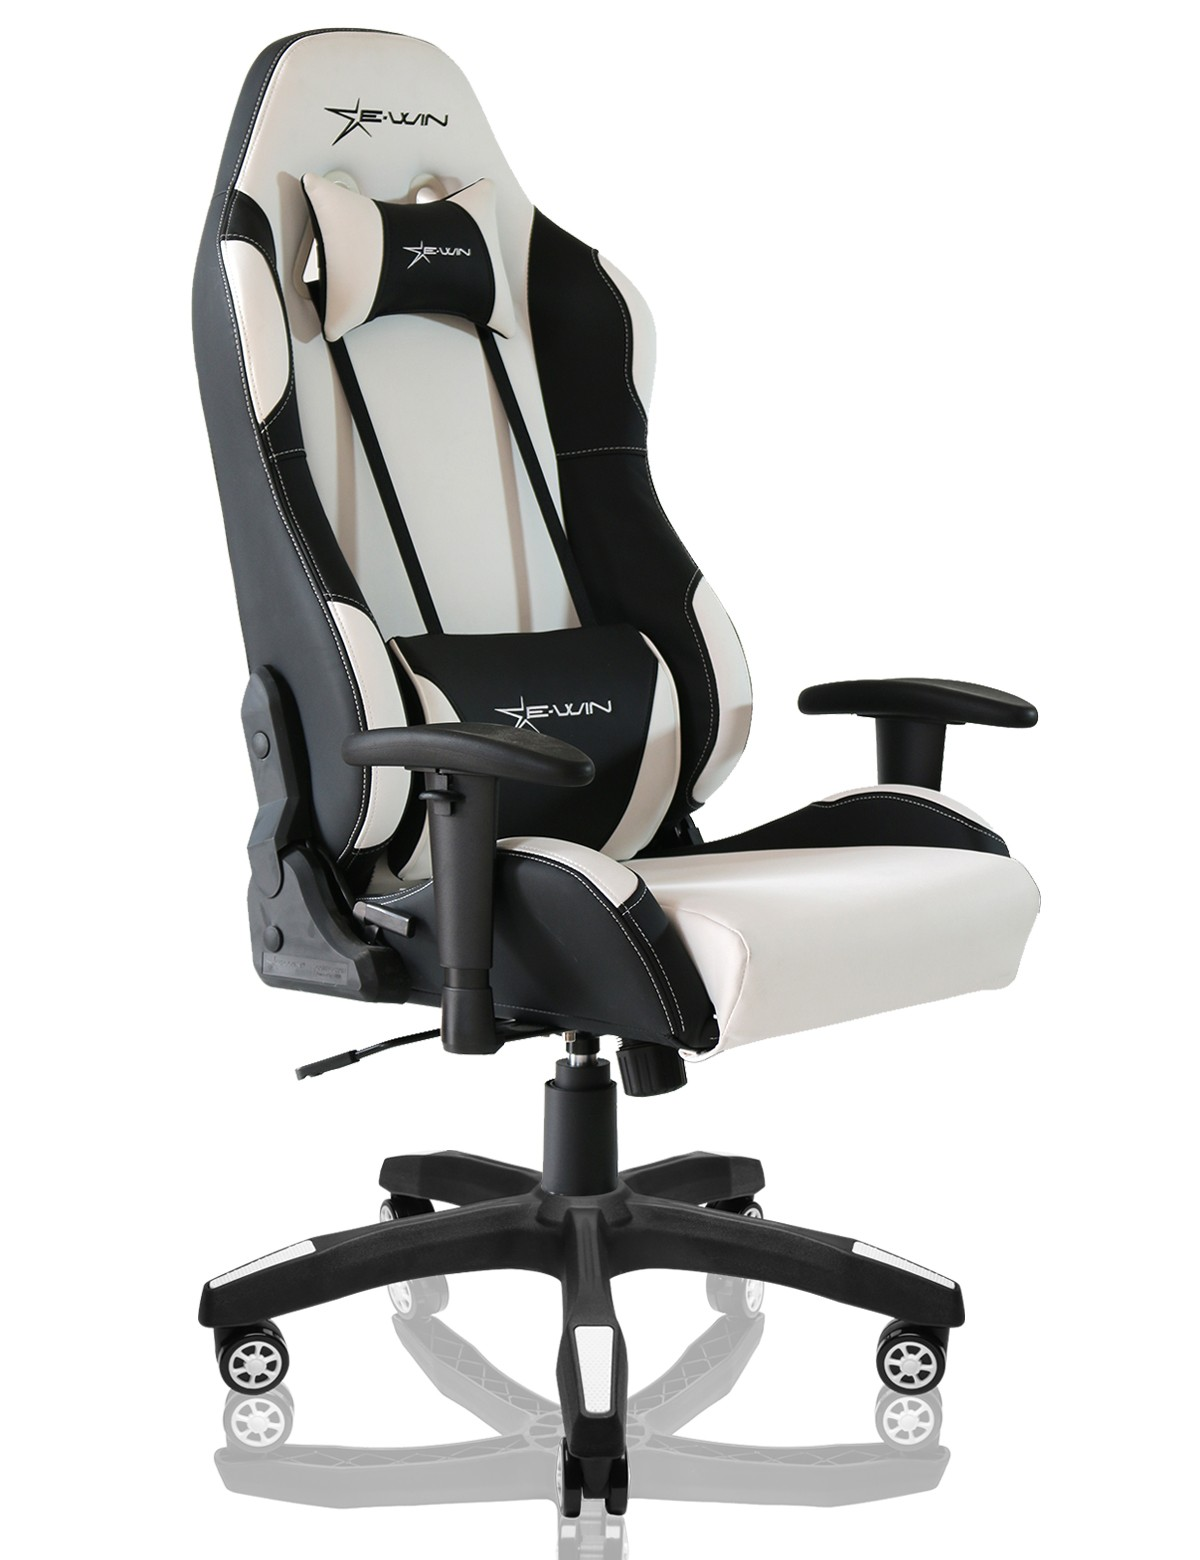 Computer Chairs For Gaming Ewinracing Clc Ergonomic Office Computer Gaming Chair With